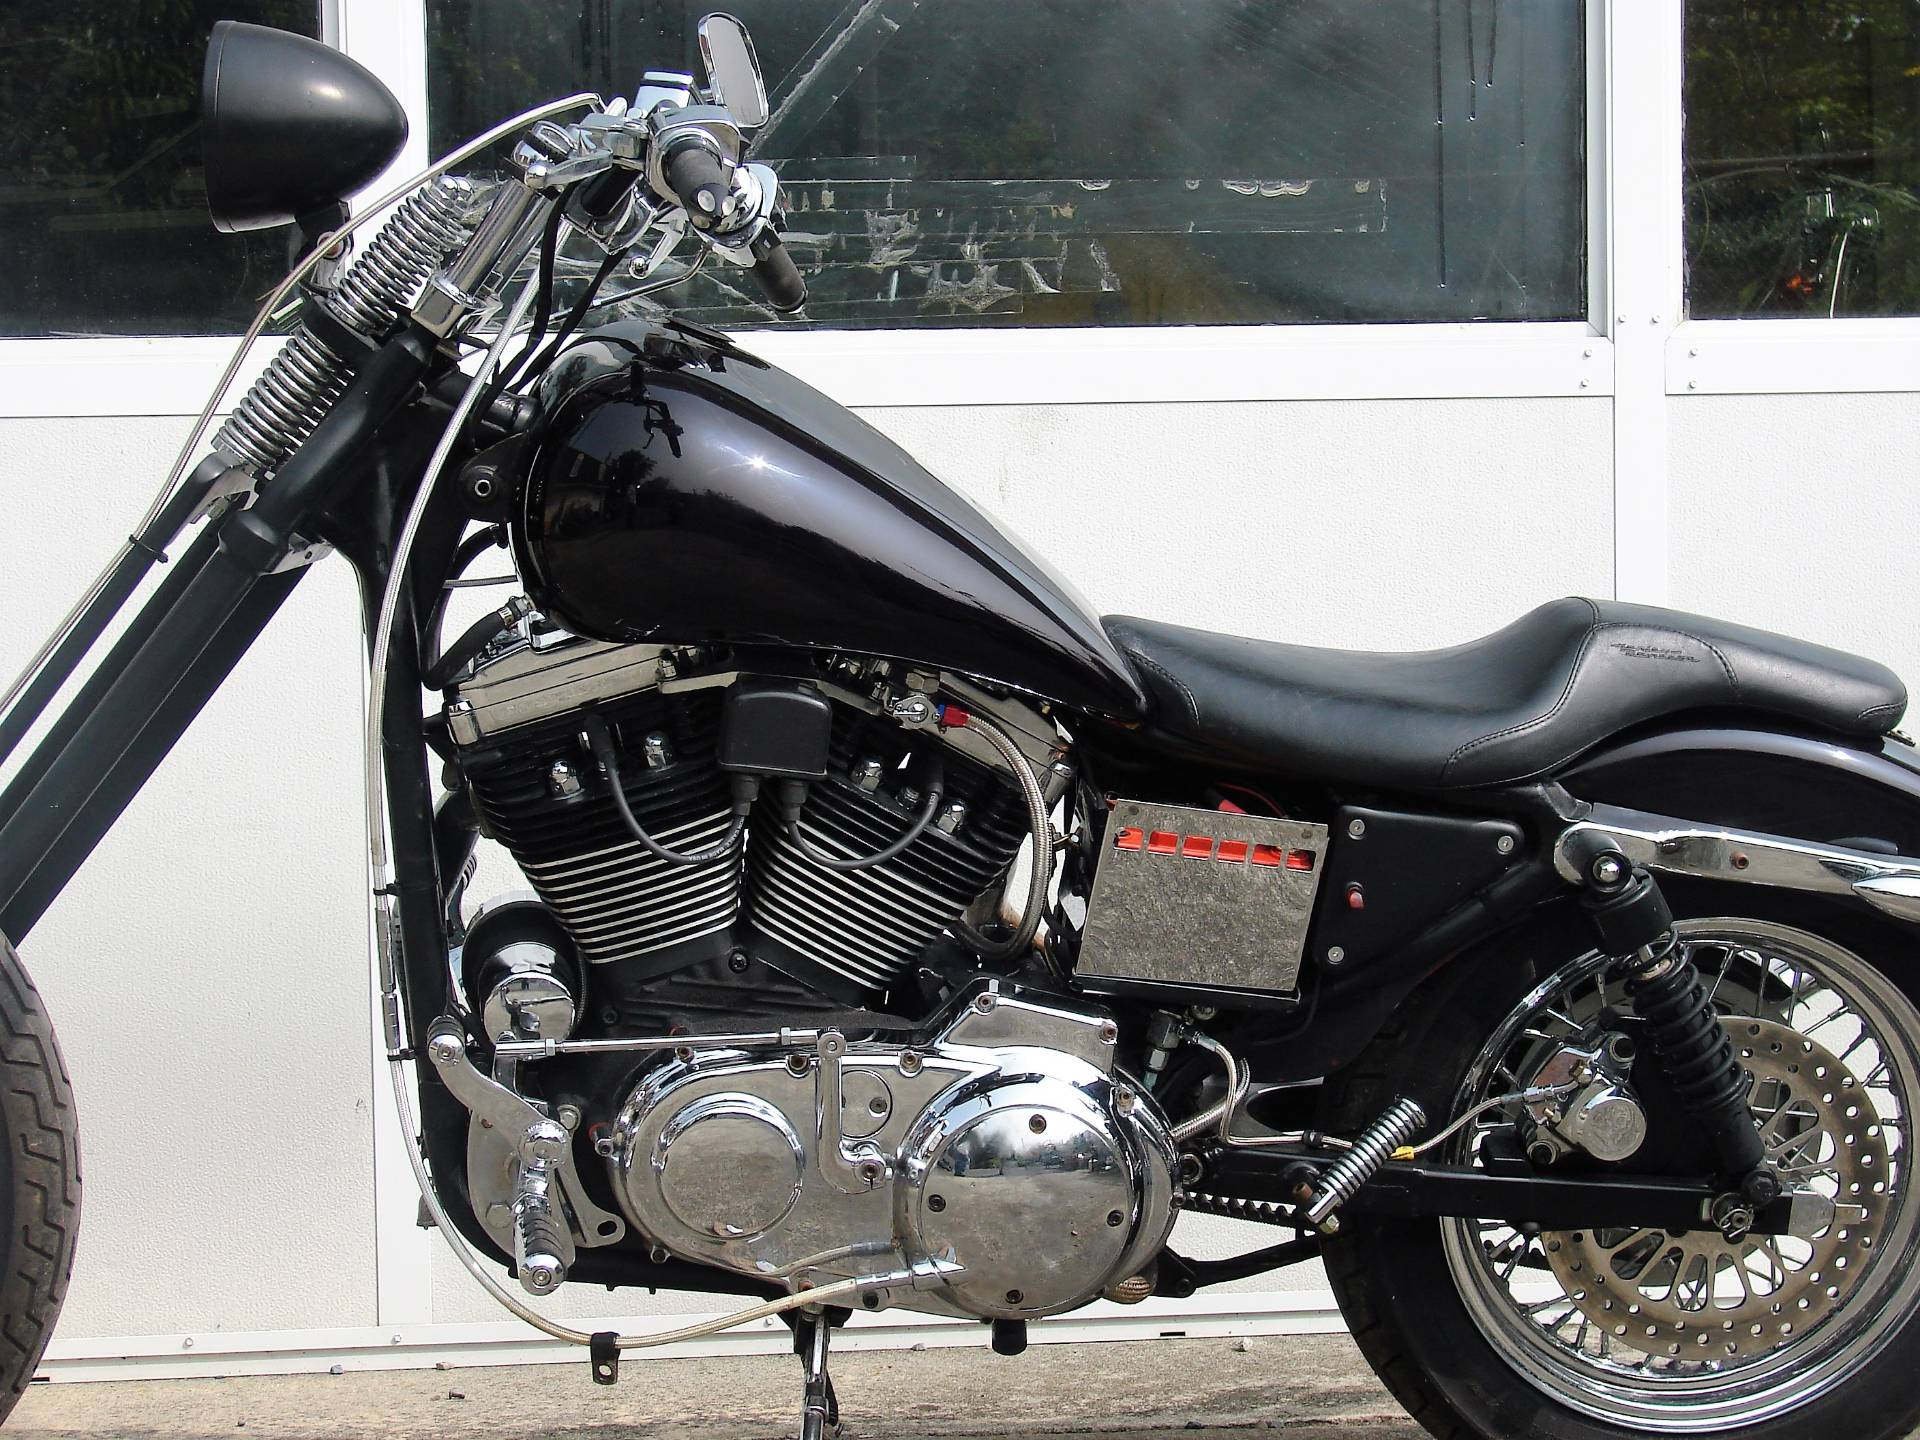 1995 Harley-Davidson XL 1200 Sportster (Conversion) in Williamstown, New Jersey - Photo 9